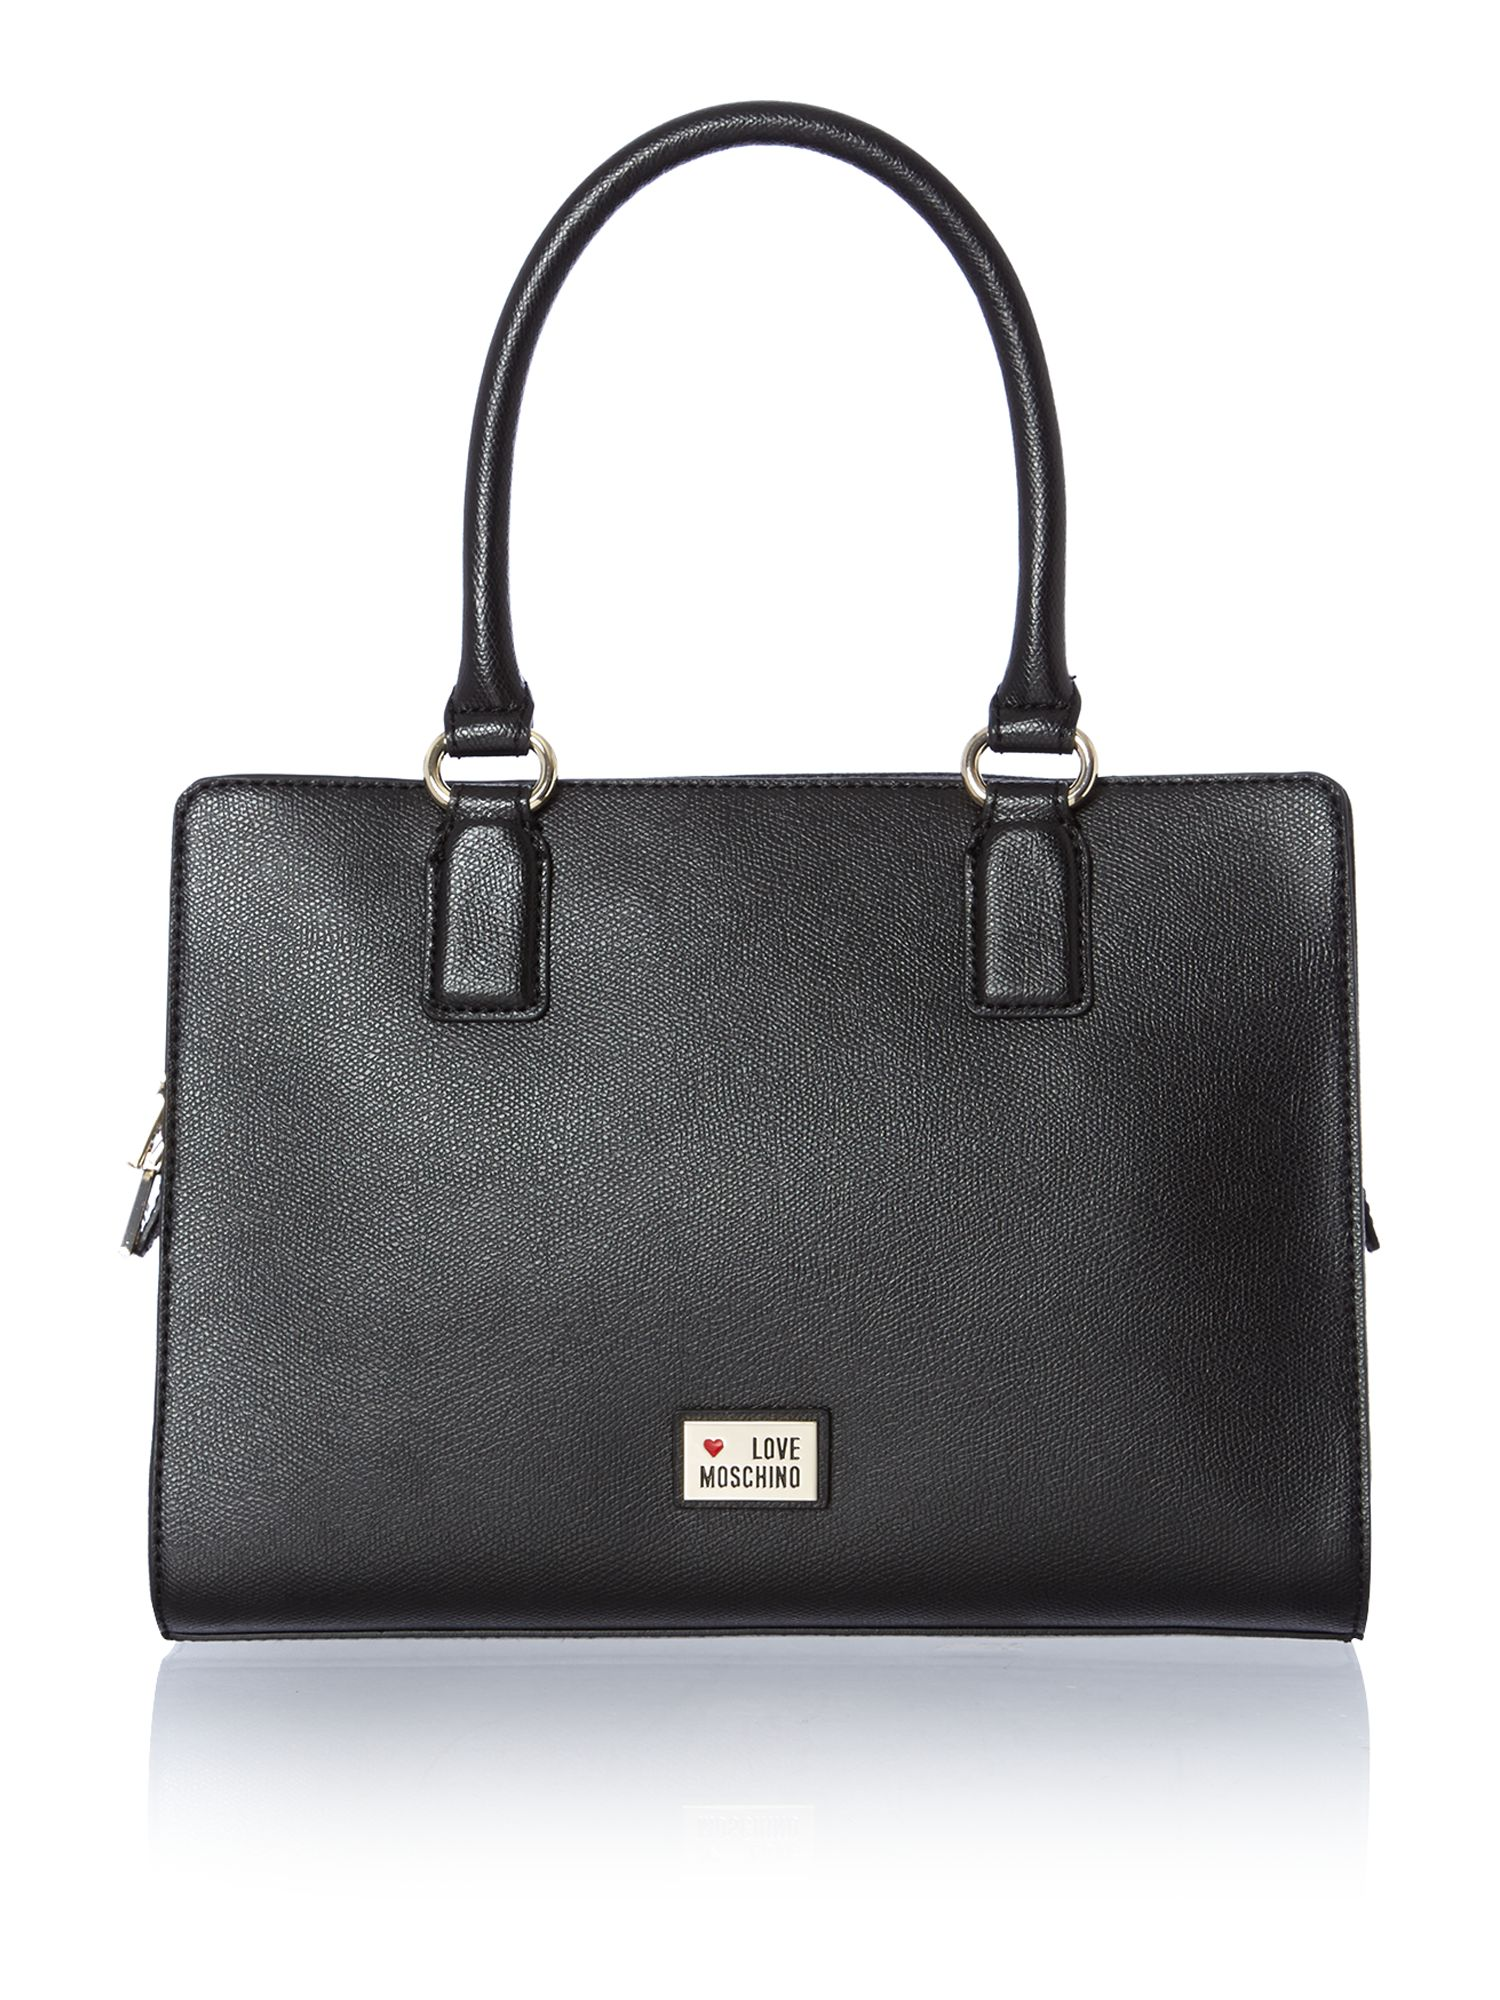 Black small saffiano tote bag